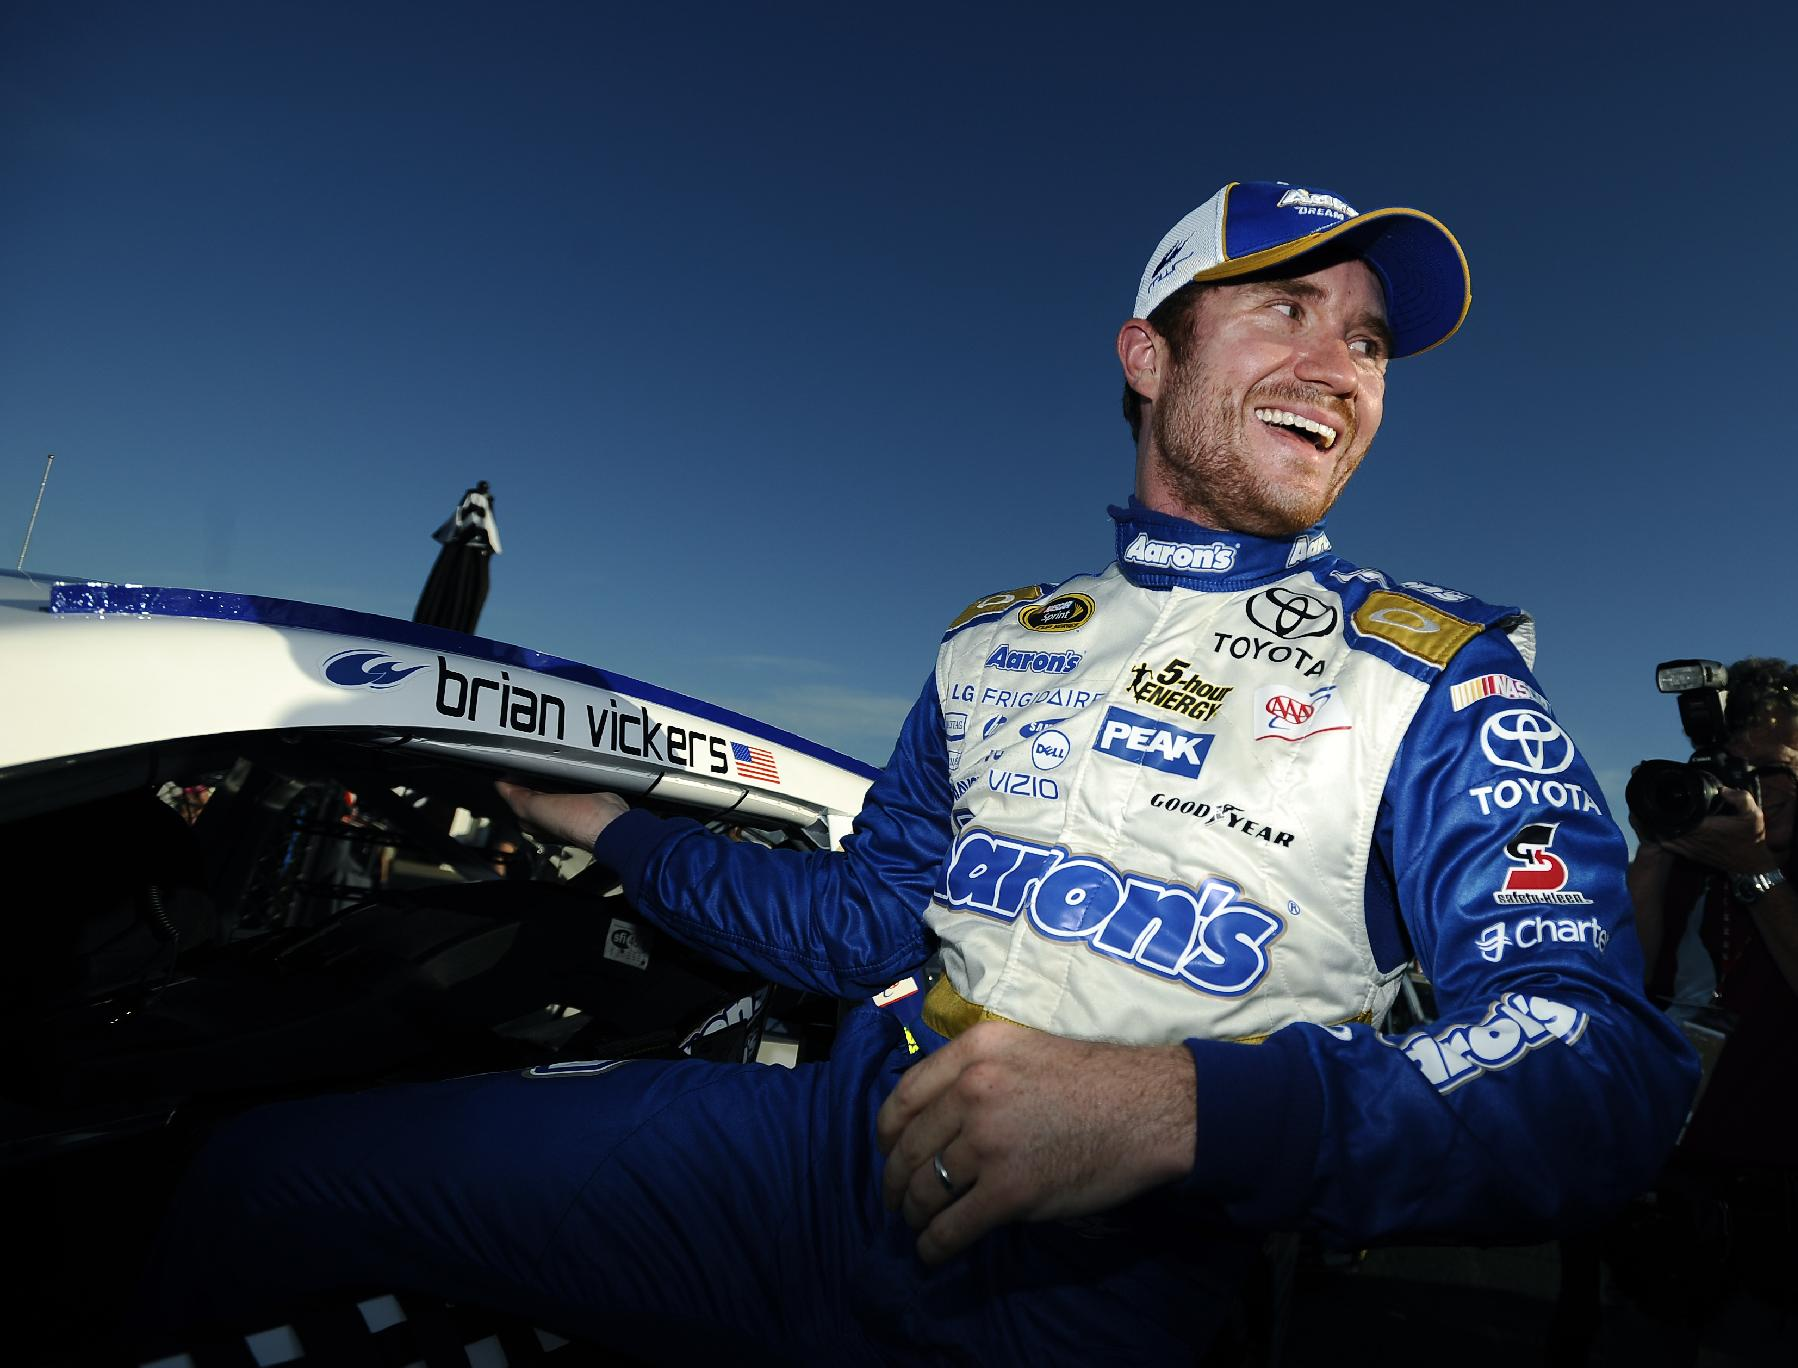 Brian Vickers climbs out of his car after winning the pole for Sunday's NASCAR Sprint Cup Series auto race at Talladega Superspeedway Saturday, Oct. 18, 2014, in Talladega, Ala.   (AP Photo/Rainier Ehrhardt)